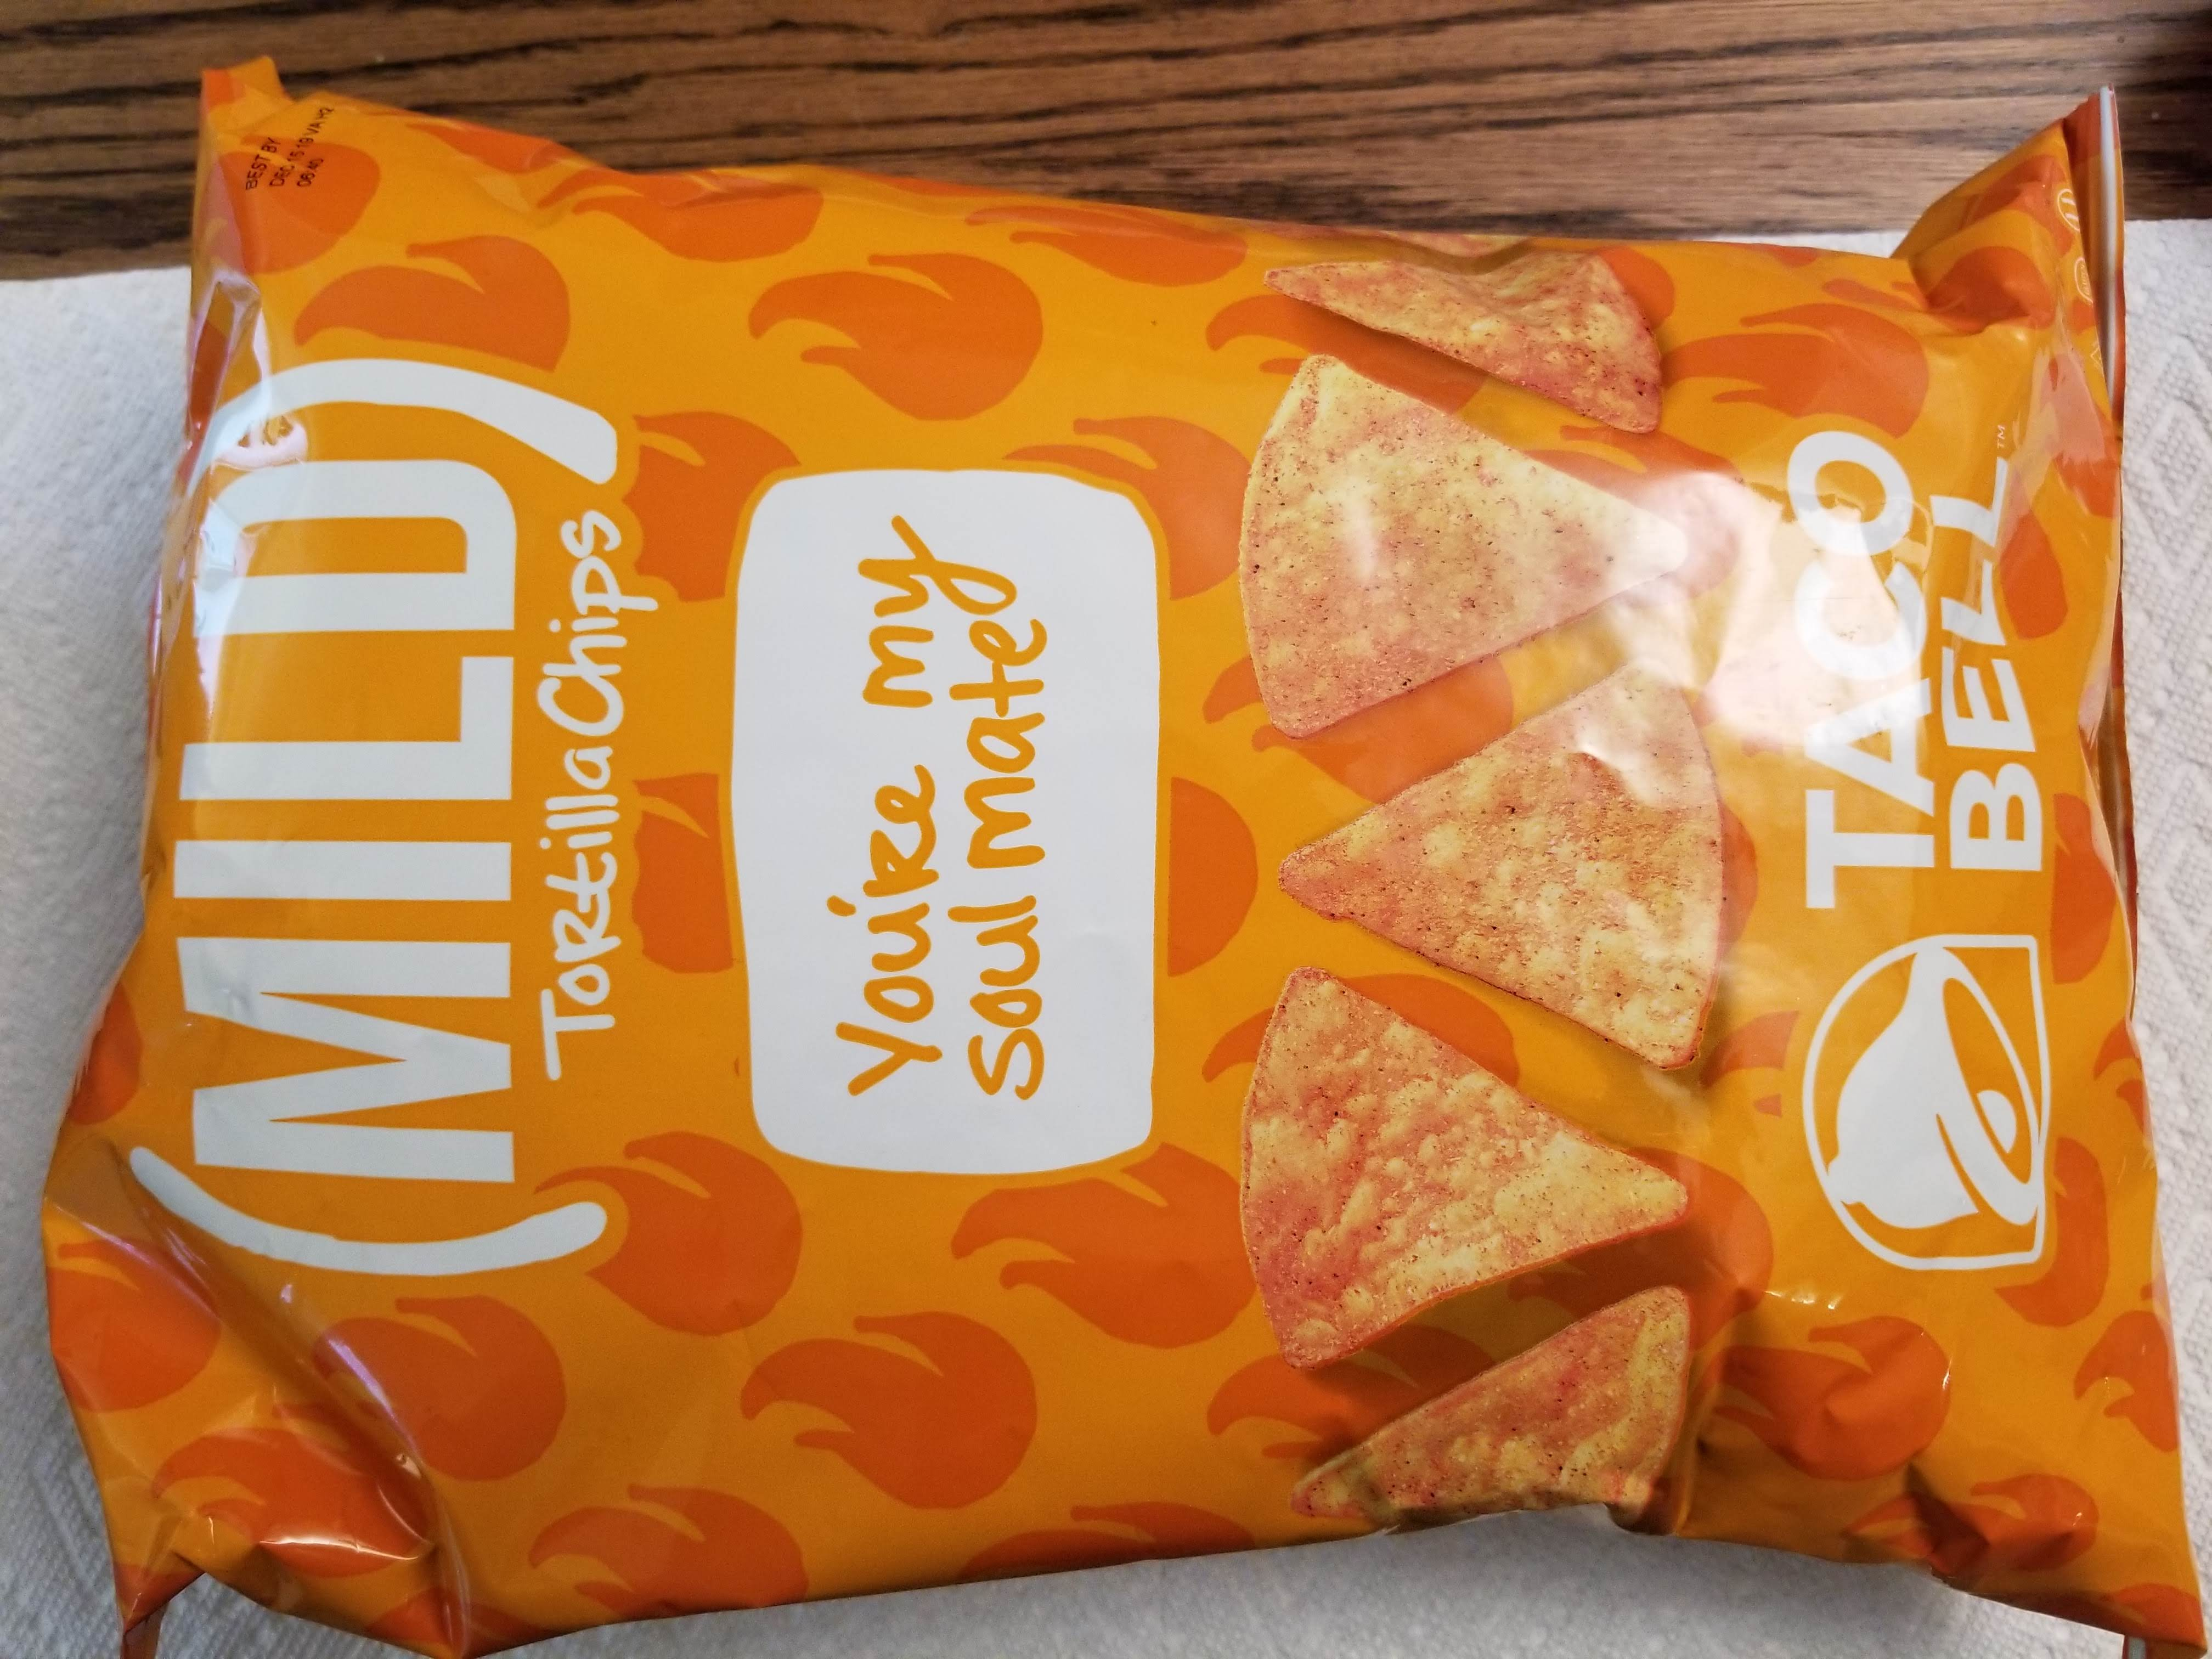 Food Review: Taco Bell (Mild) Tortilla Chips